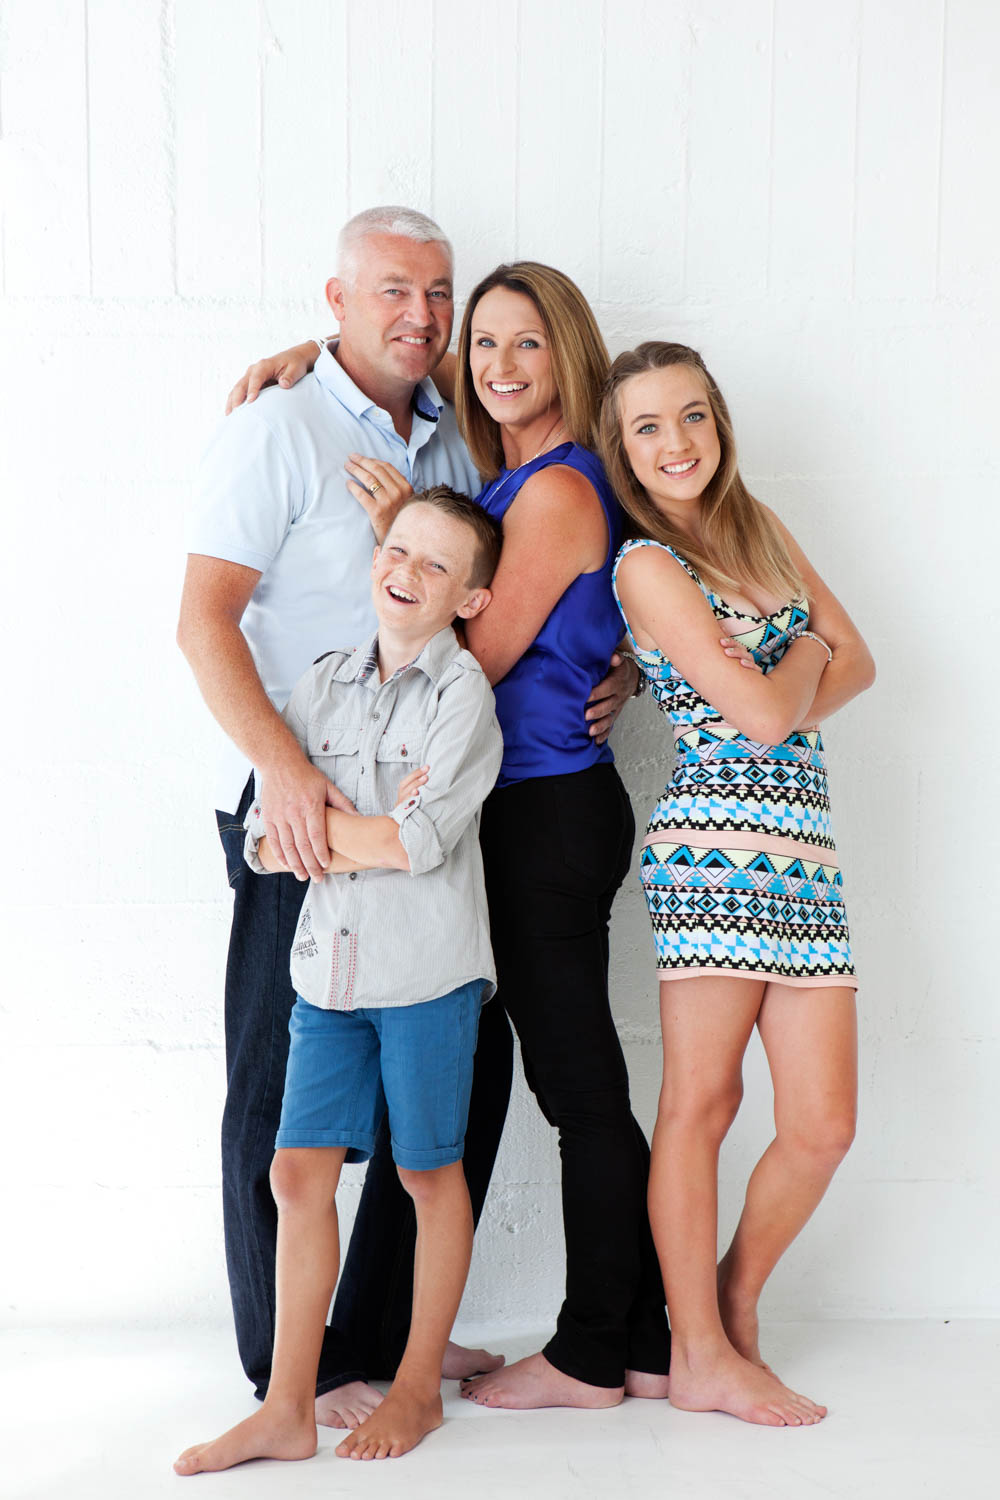 Family_Photographer_Auckland_17290_1818.jpg